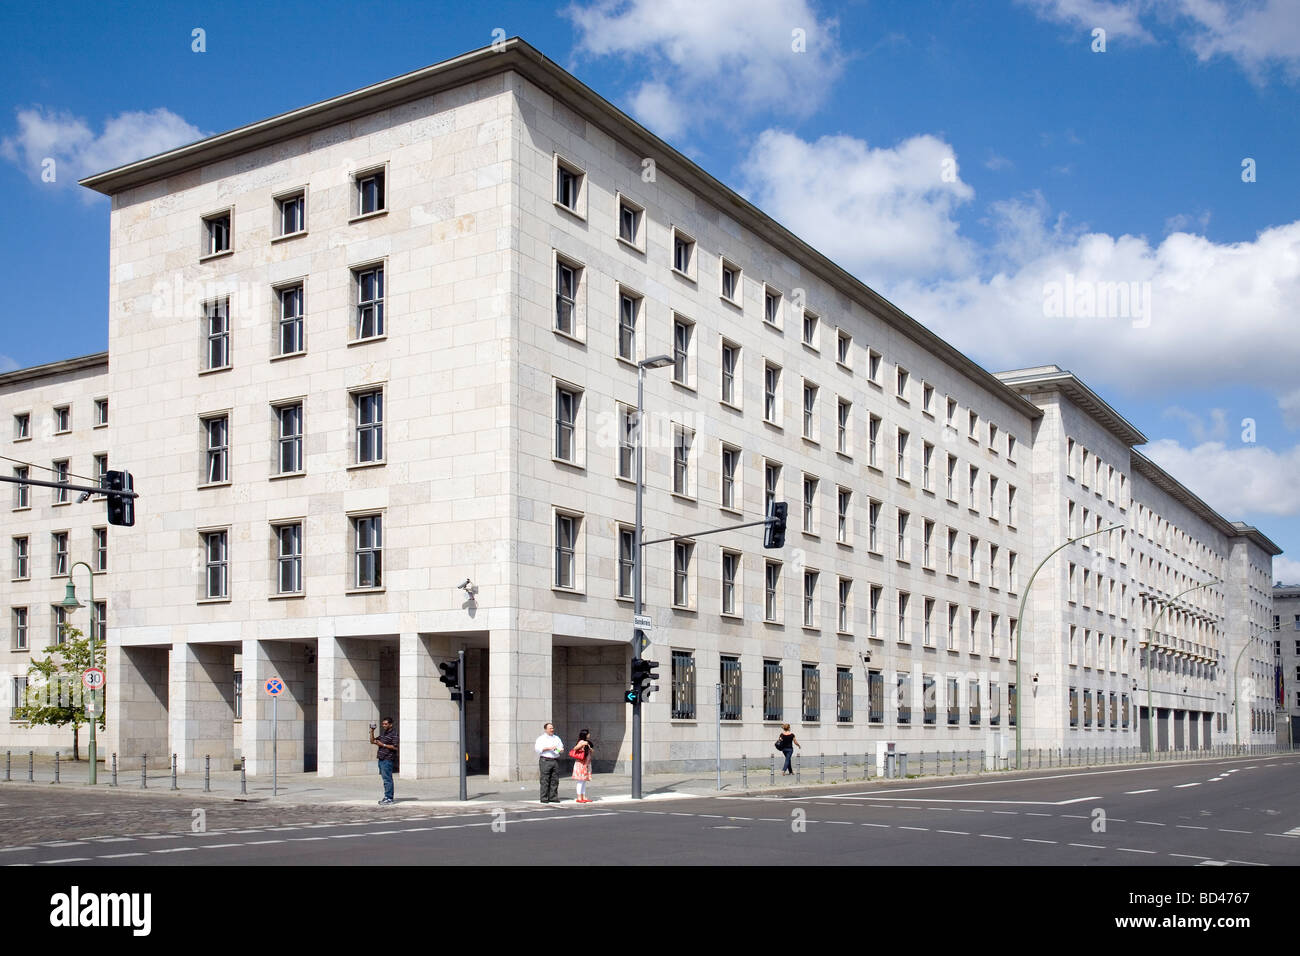 Former Reich Air Ministry, now German Finance Ministry, Wilhelmstrasse, Berlin, Germany - Stock Image